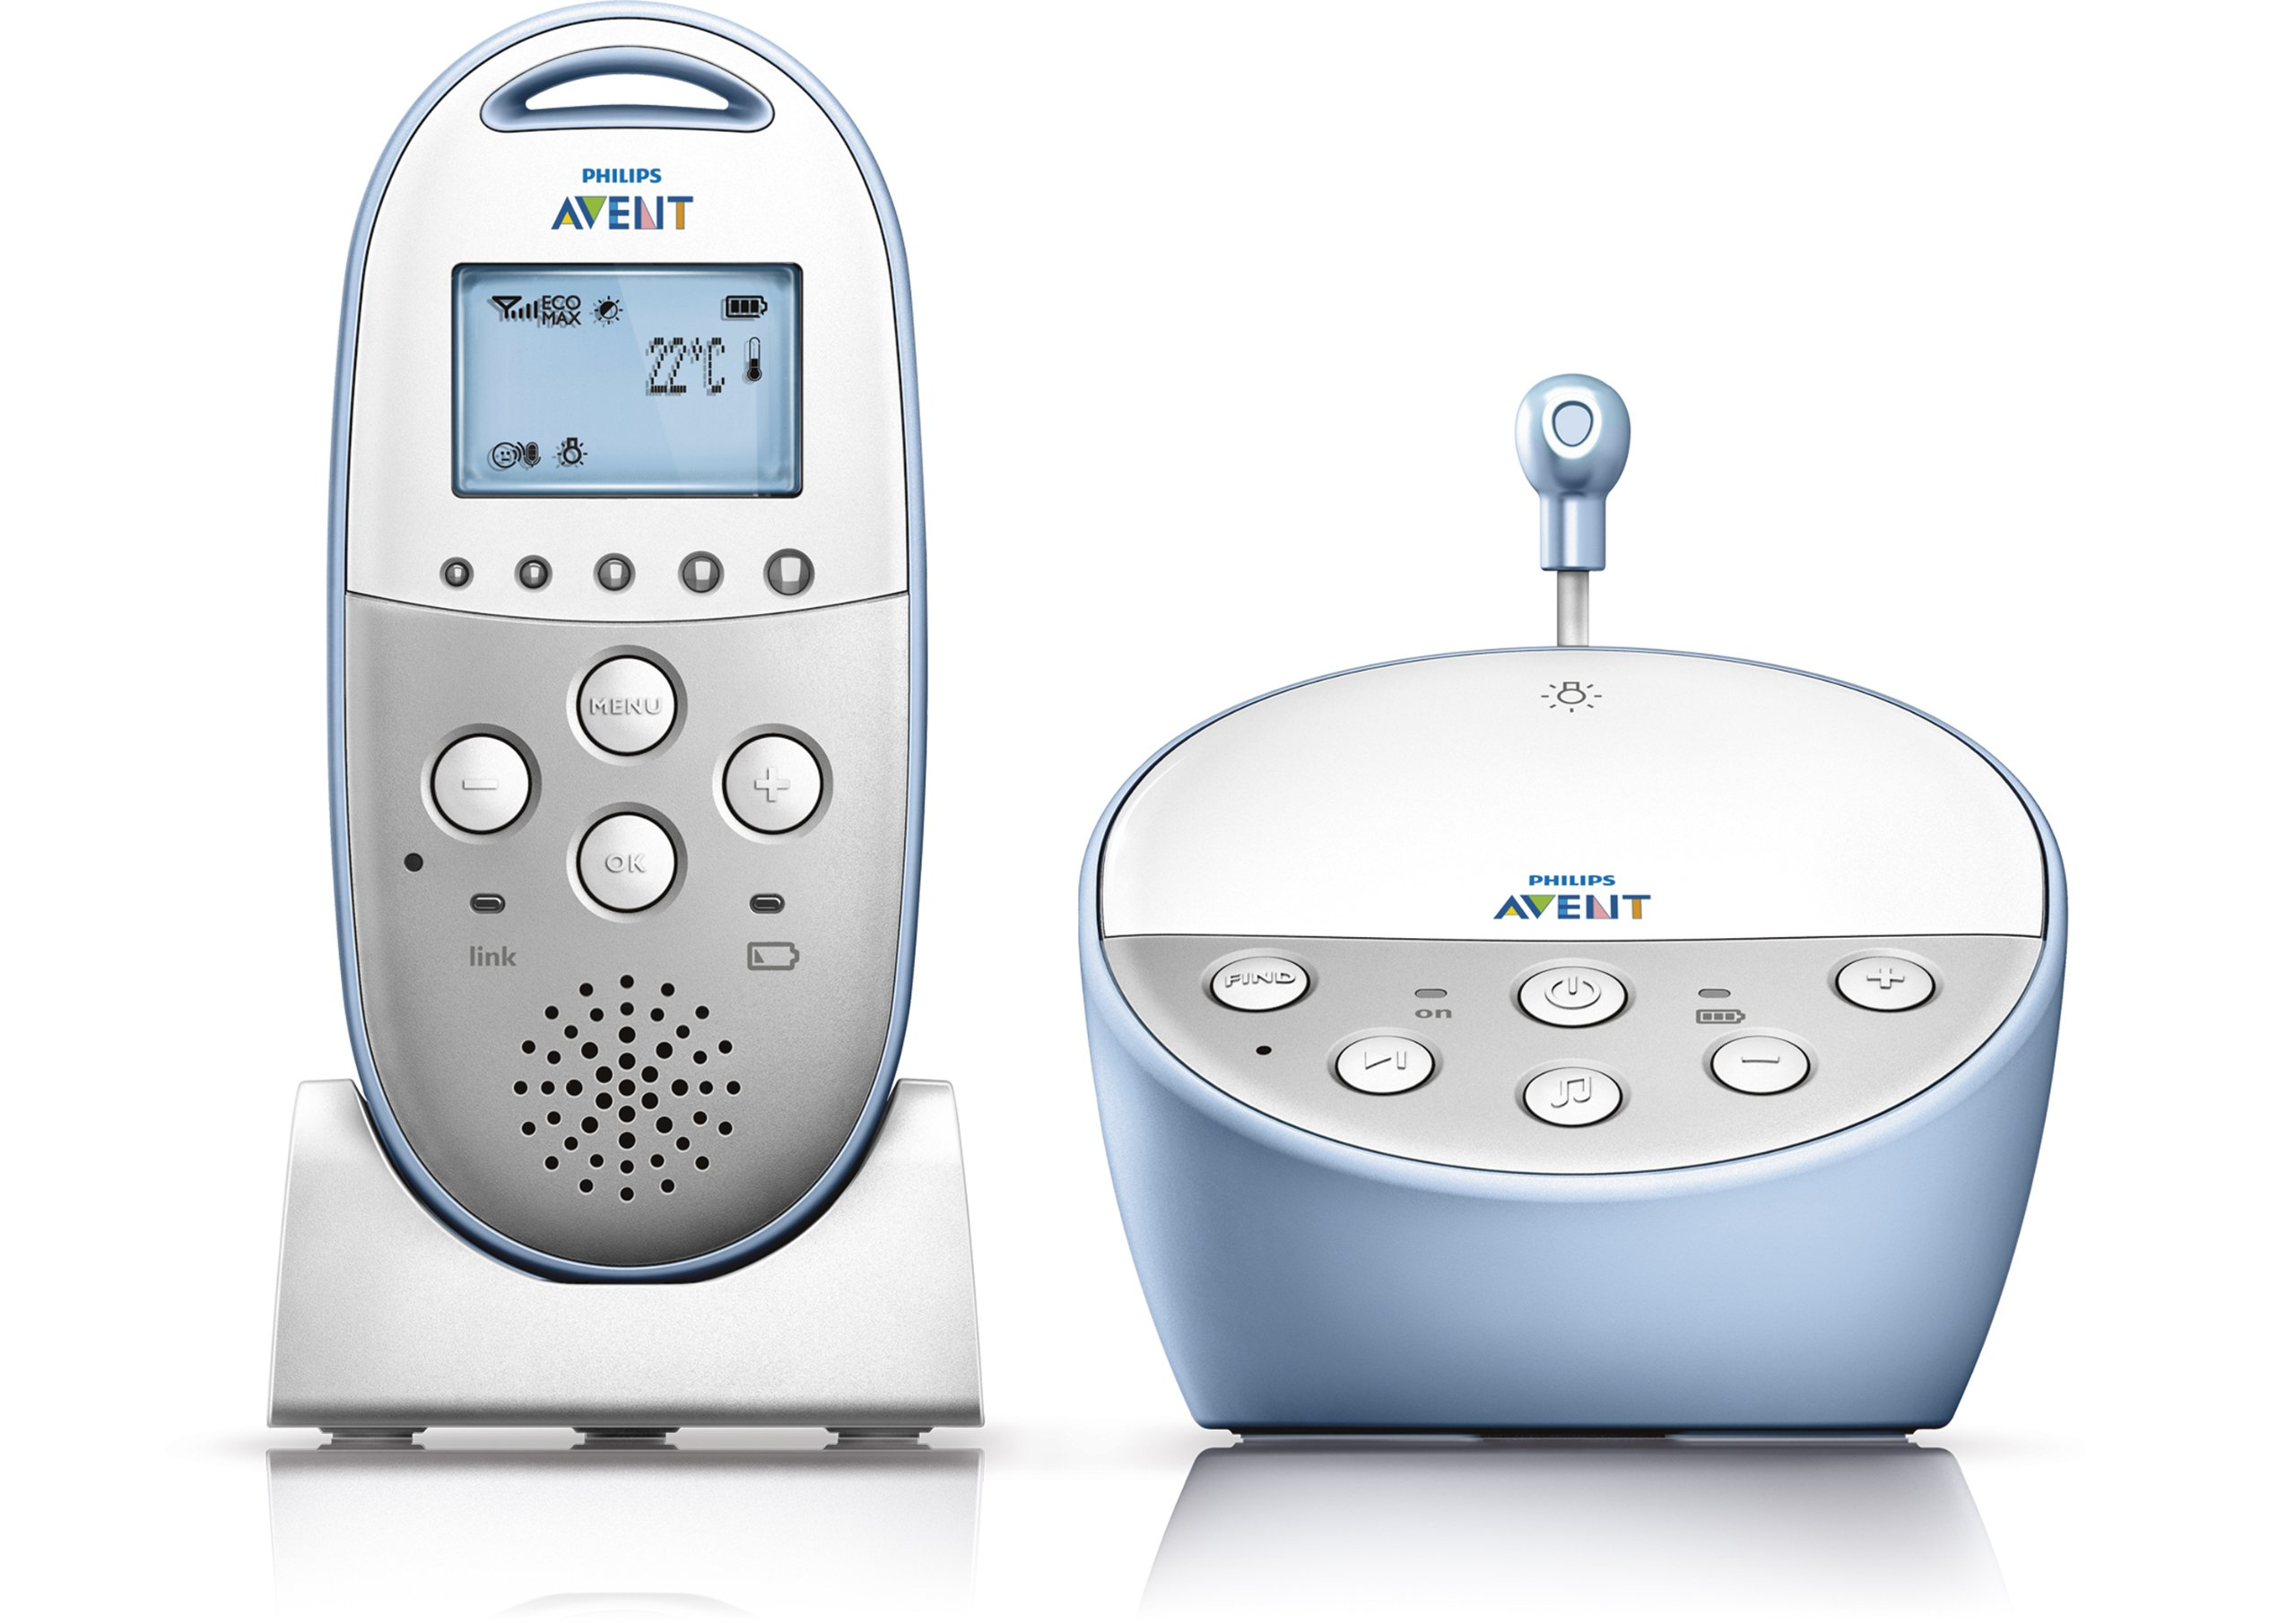 philips avent dect baby monitor with temperature sensor night mode new ebay. Black Bedroom Furniture Sets. Home Design Ideas